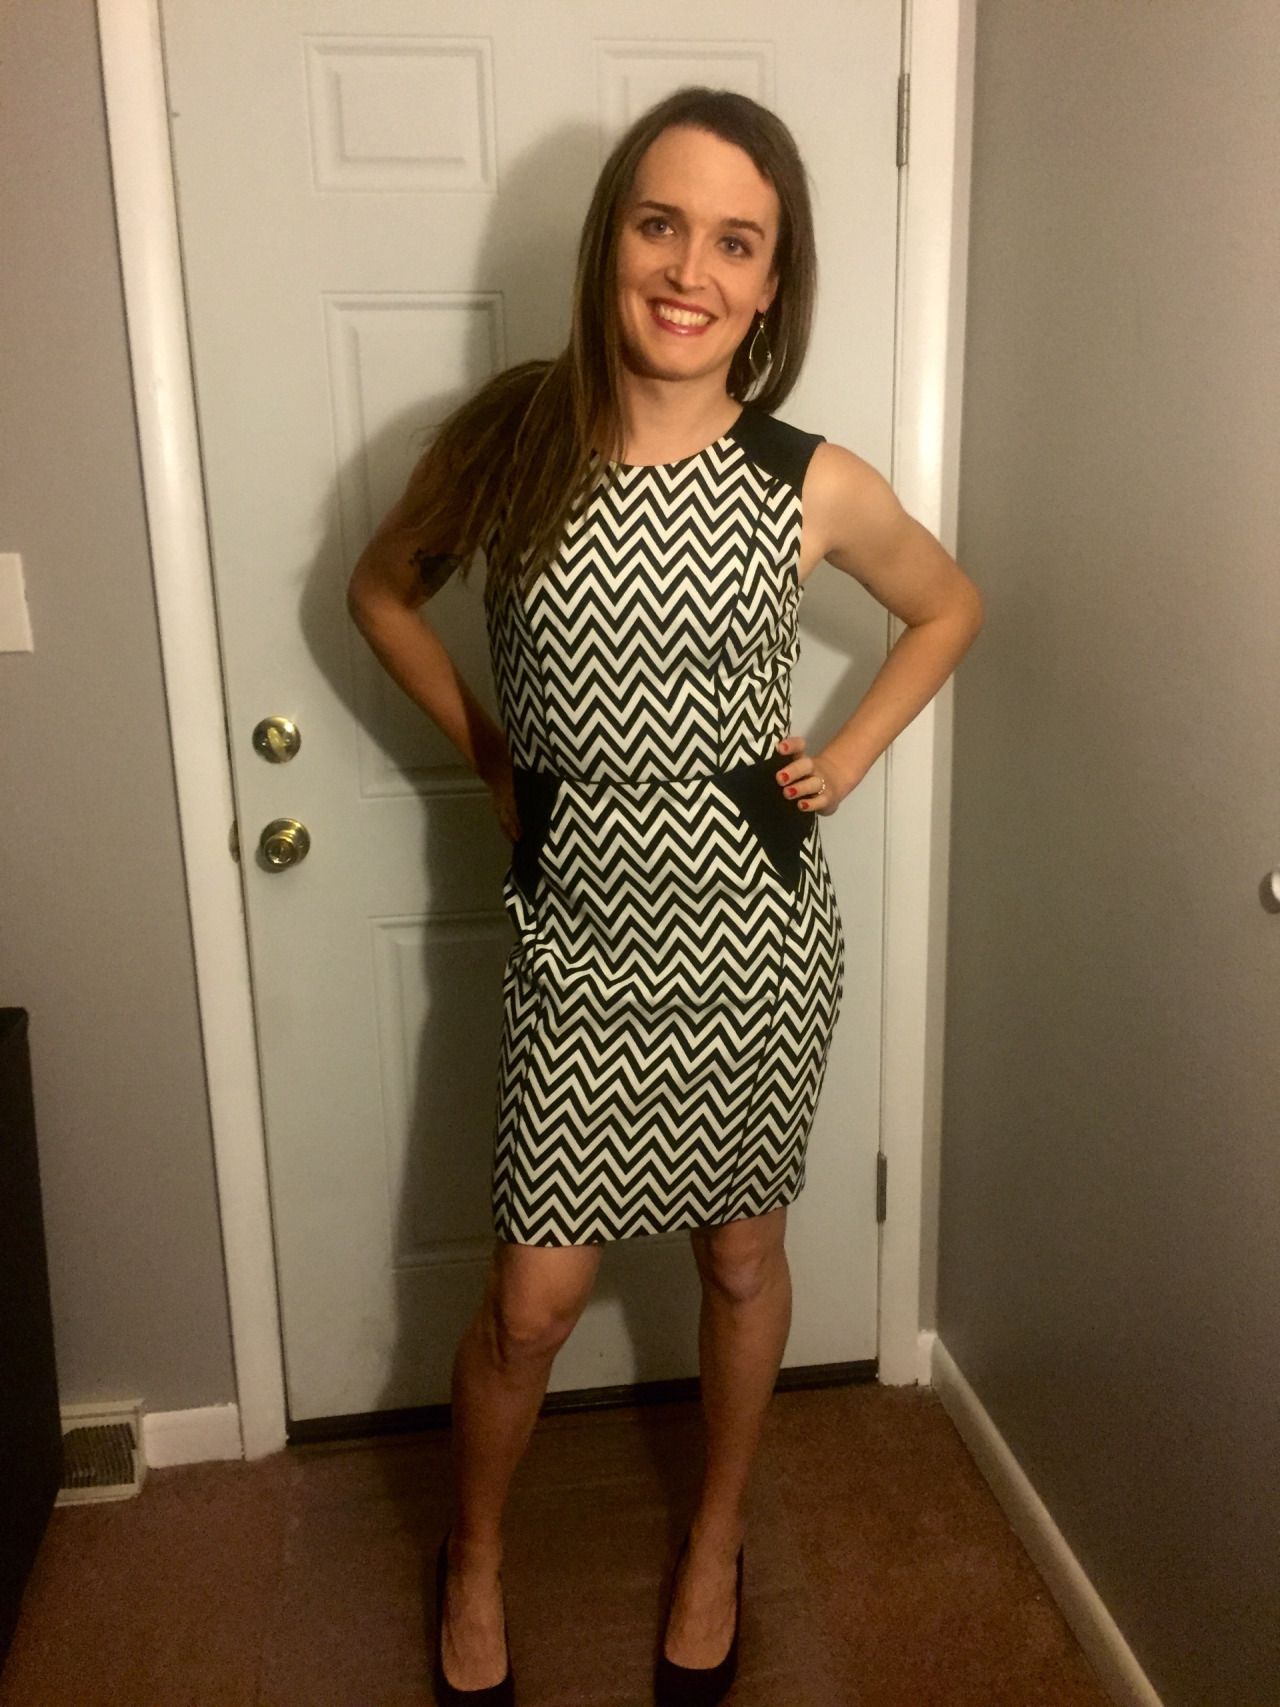 Mywifeykyliemylifey So My Wife Bought This Dress Today And She Looks -6235